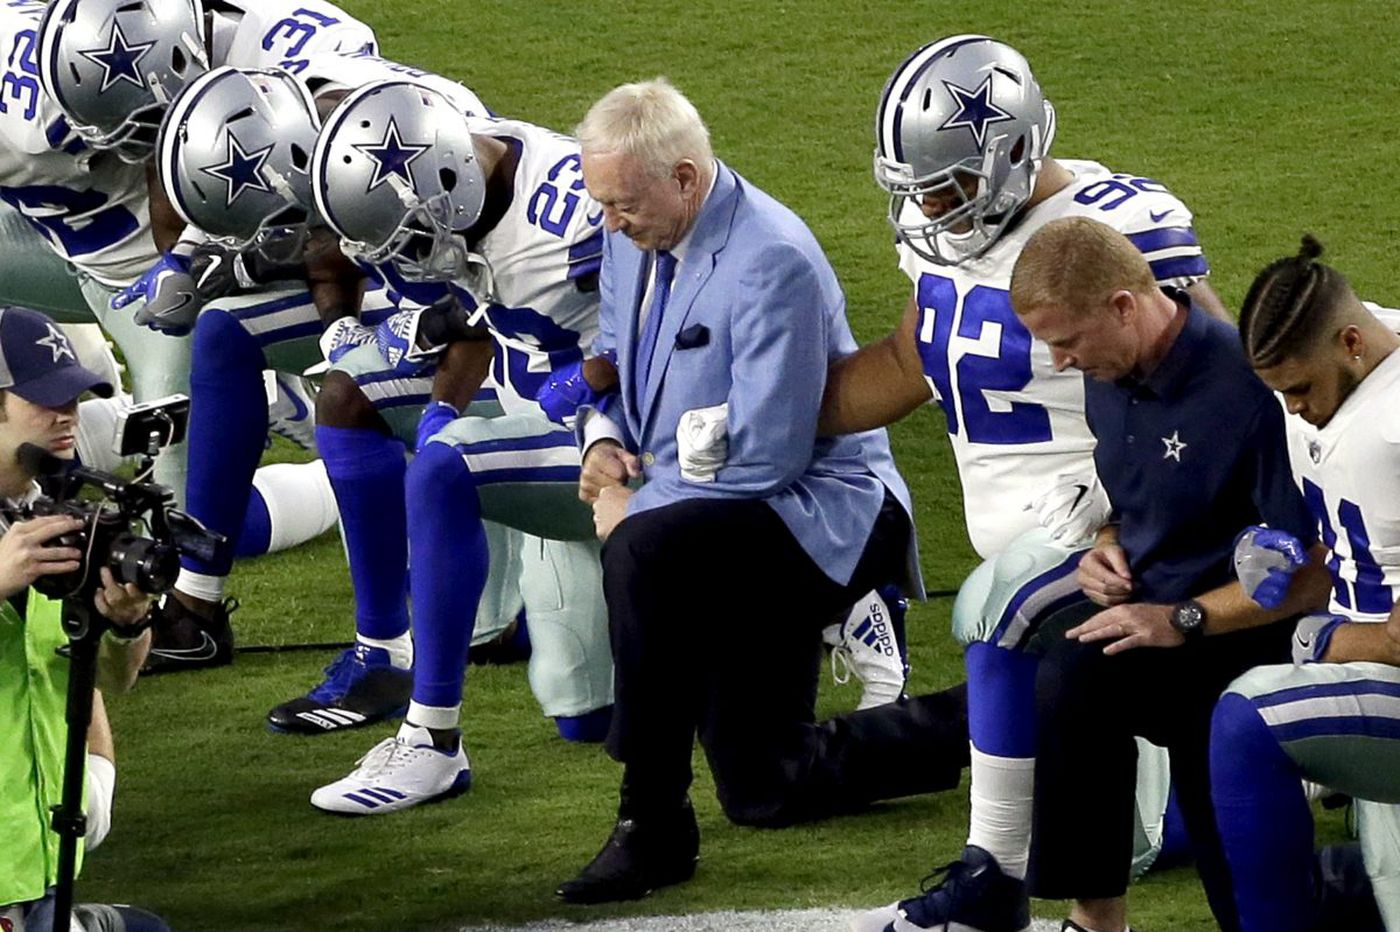 NFL owners' slavemaster mindset underscores their reaction to anthem protests | Solomon Jones